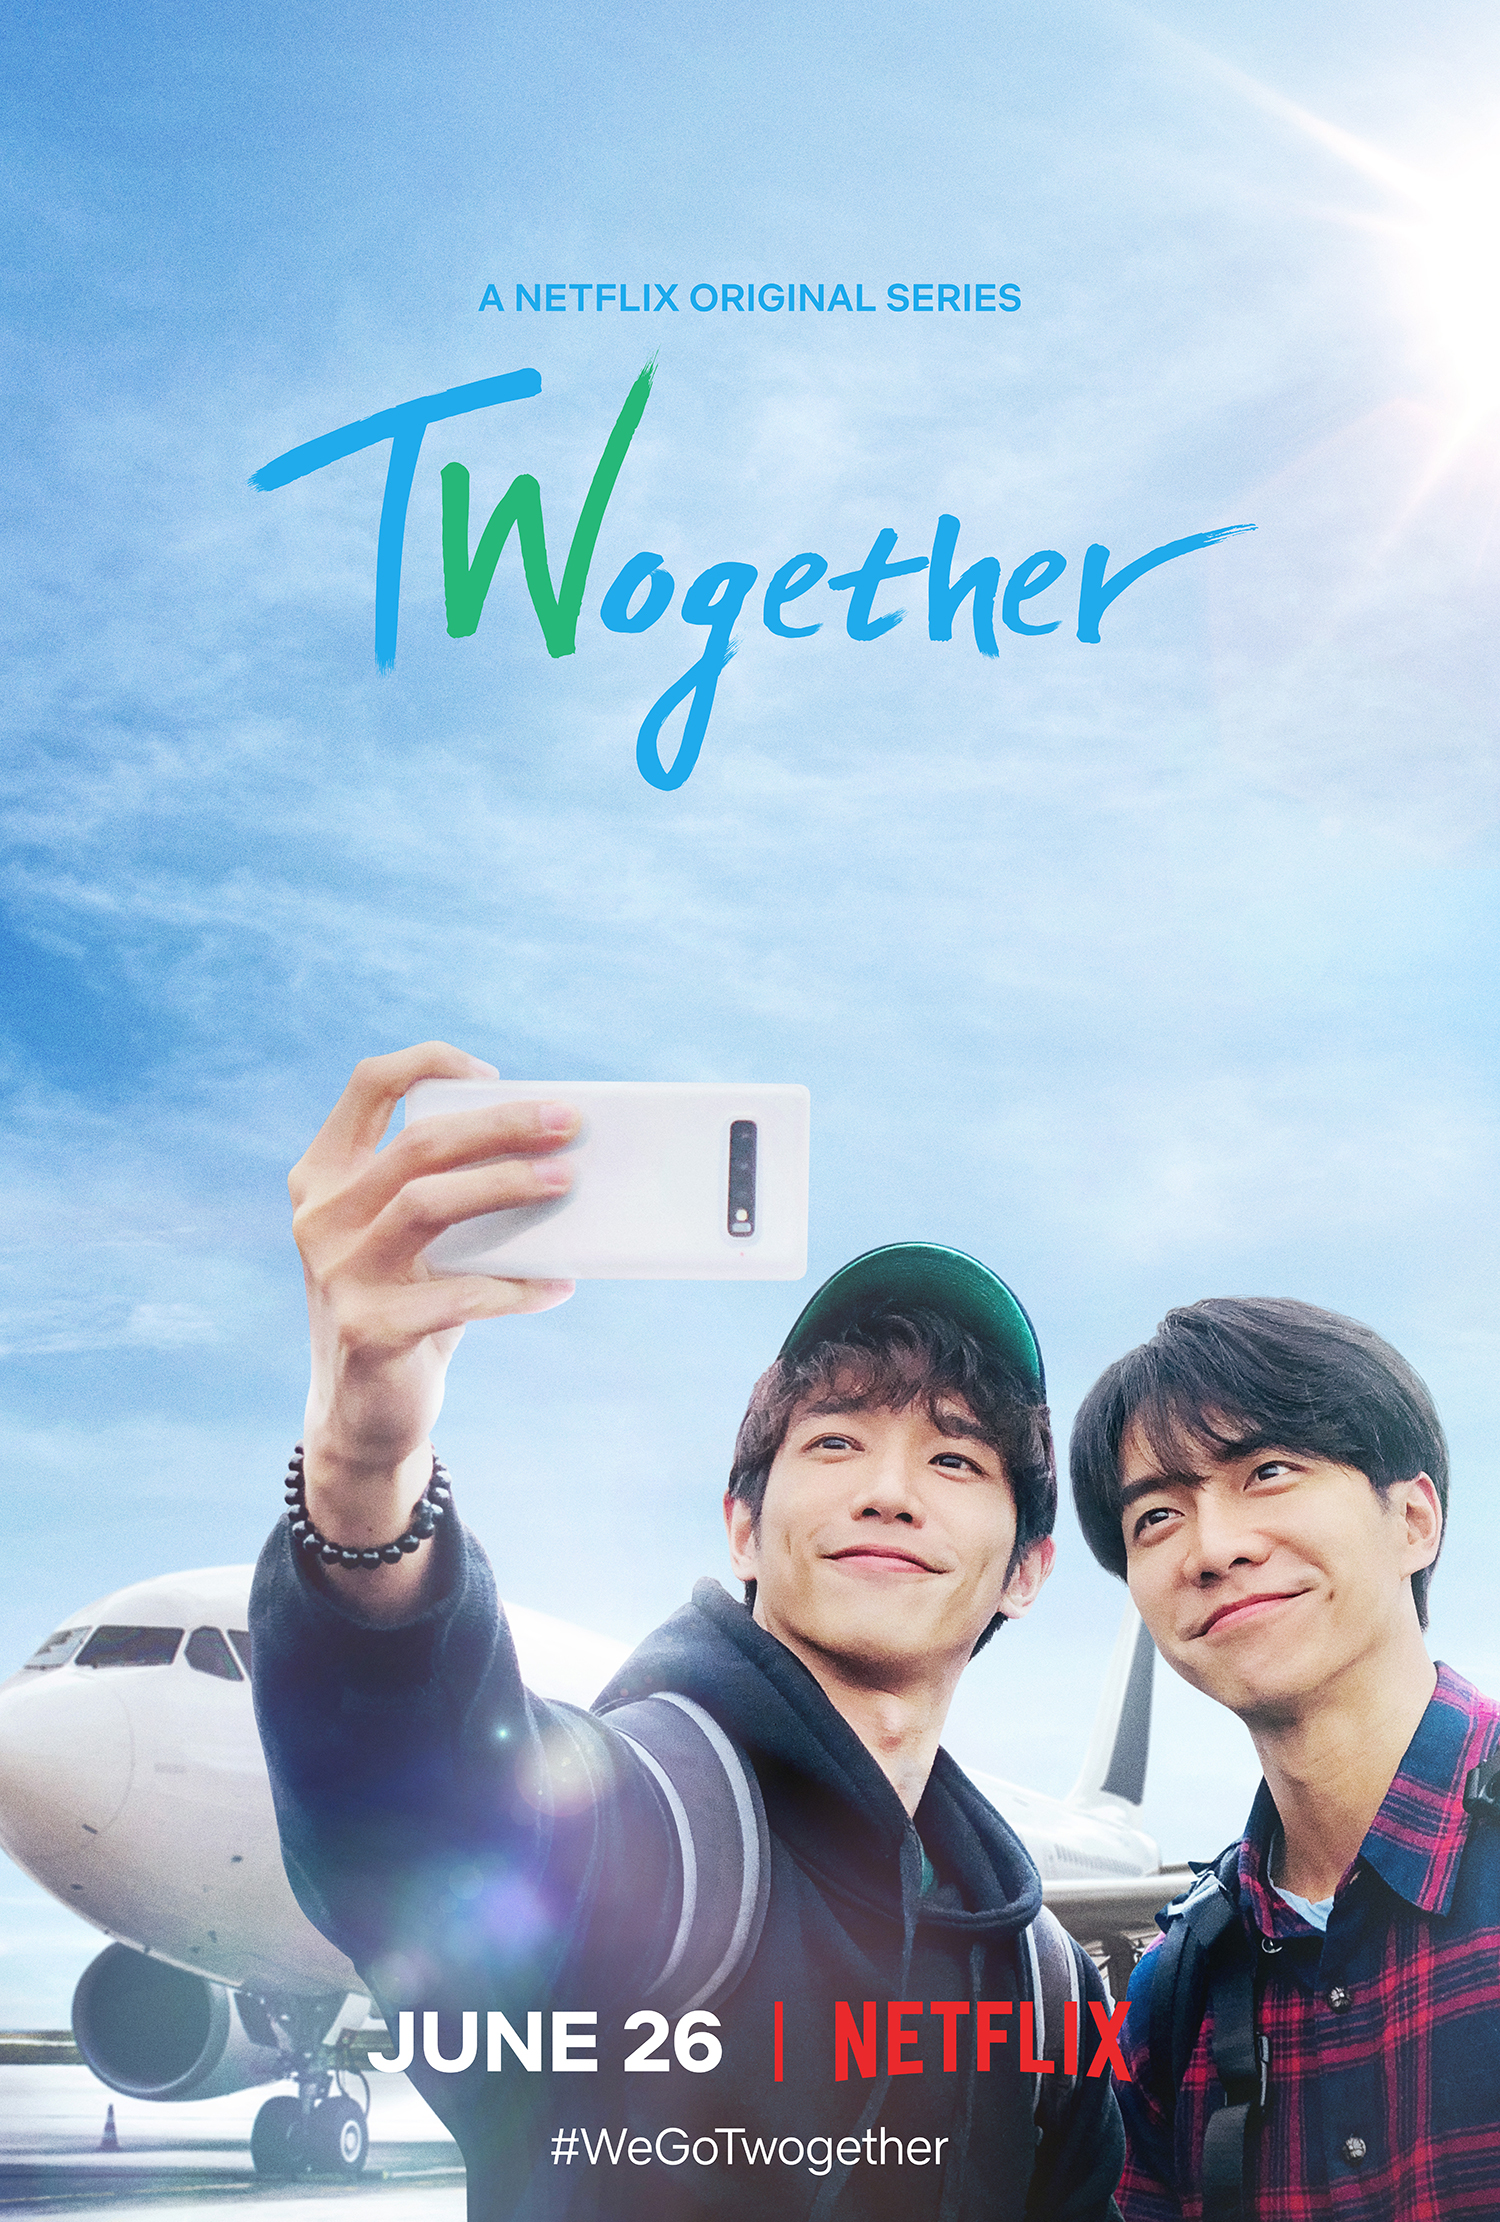 Unscripted Travel Series Twogether, Starring Lee Seung-gi and Jaster Liu, Premieres on June 26 - Image 1